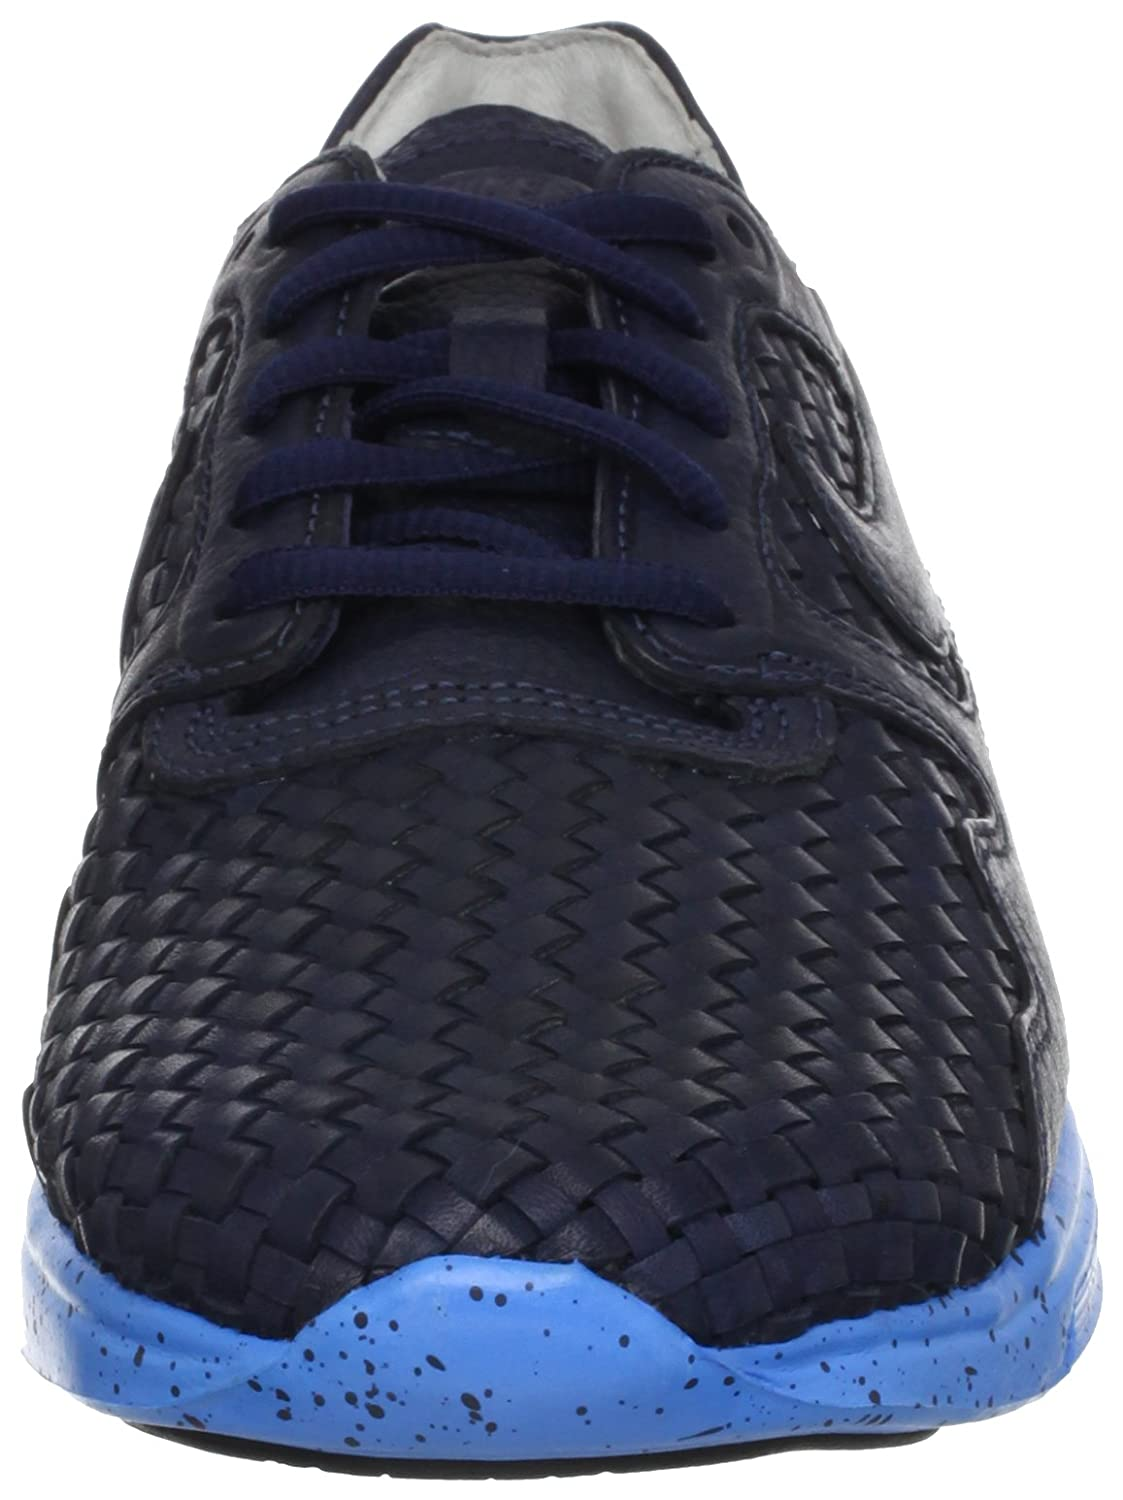 b123c168b143 Amazon.com  NIKE Lunar Flow Woven Leather TZ - Dark Obsidian Dark Obsidian  (9.5 D US)  Shoes